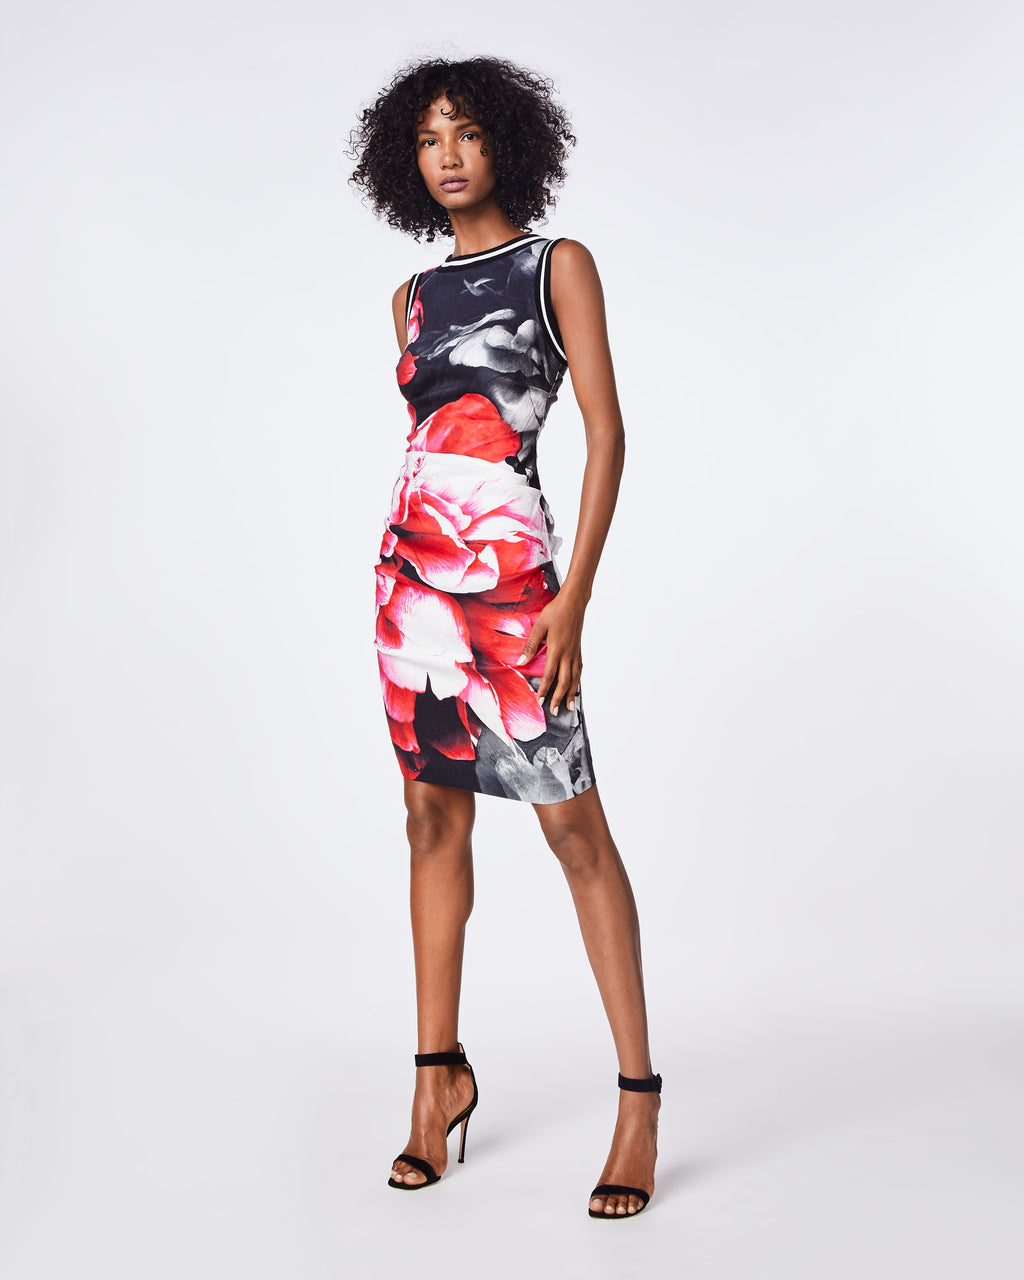 BO10159 - GIANT GARDEN LAUREN SHEATH DRESS - dresses - short - OUR CLASSIC LAUREN DRESS UPDATED IN THIS SEASON'S GIANT GARDEN PRINT. THE SLEEVELESS SILHOUETTE FEATURES A HIGH NECKLINE AND FITTED BODICE. FULLY LINED.